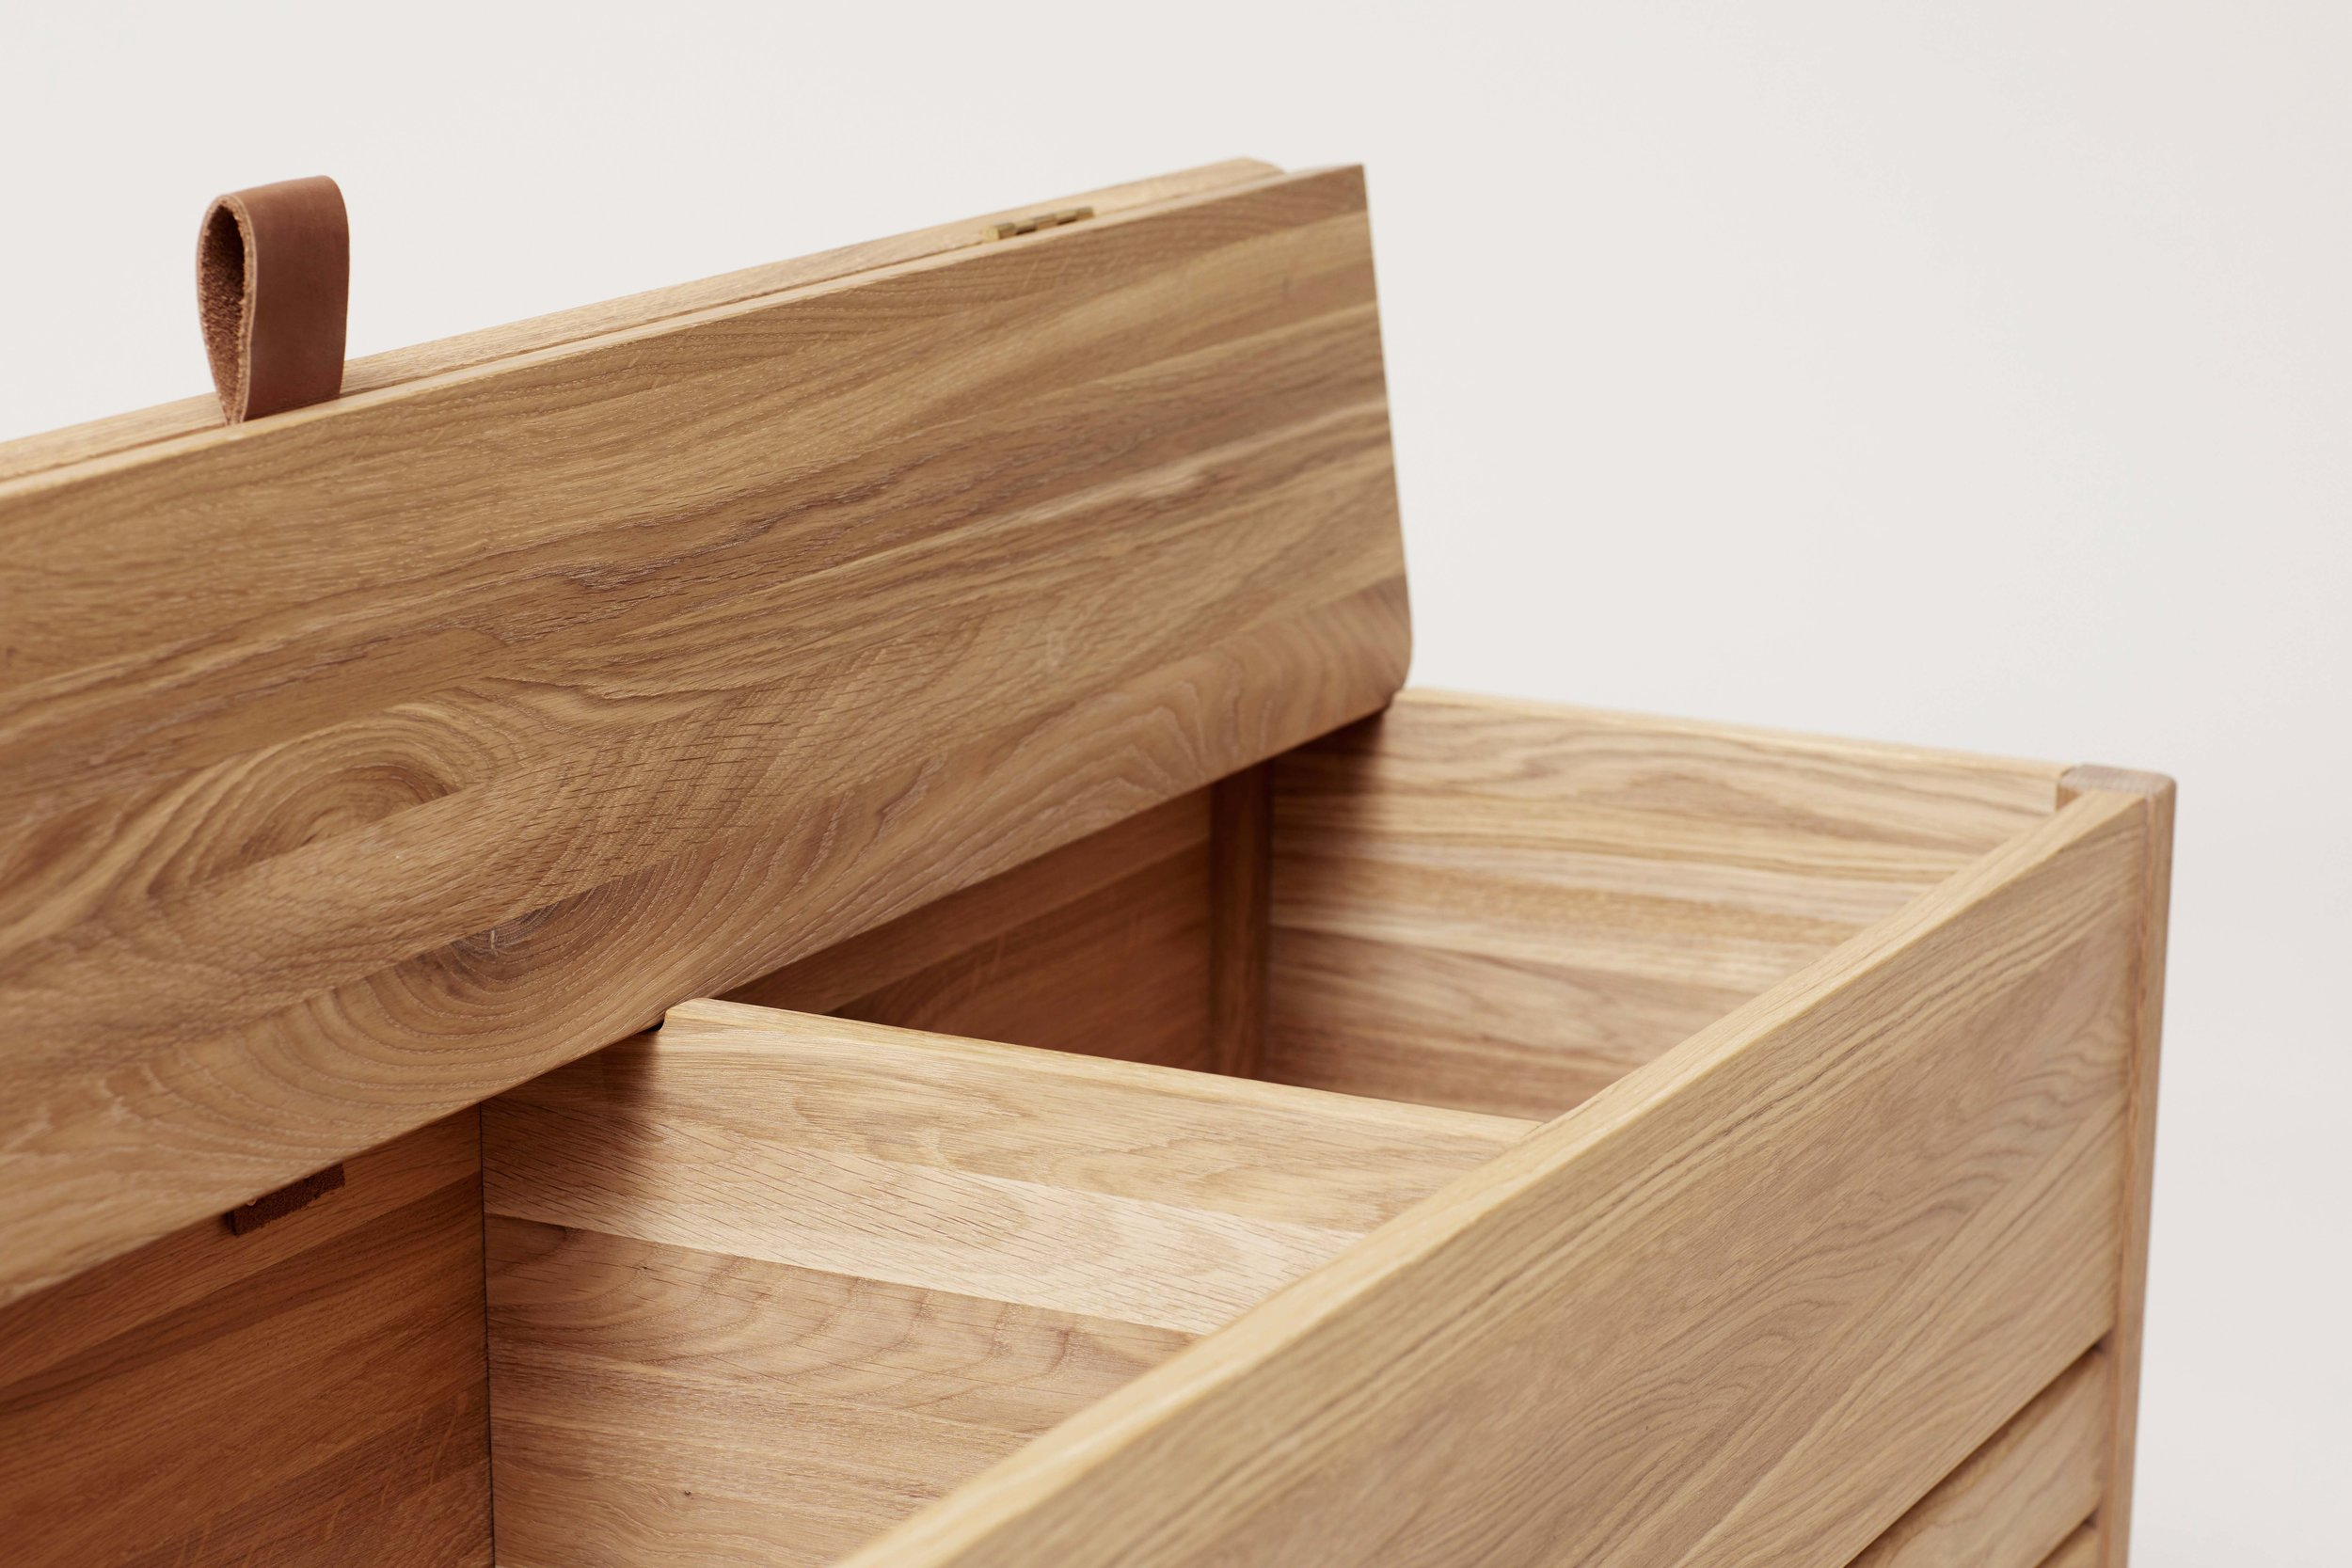 F&R_A-line-storage-bench-oak-detail_5.jpg